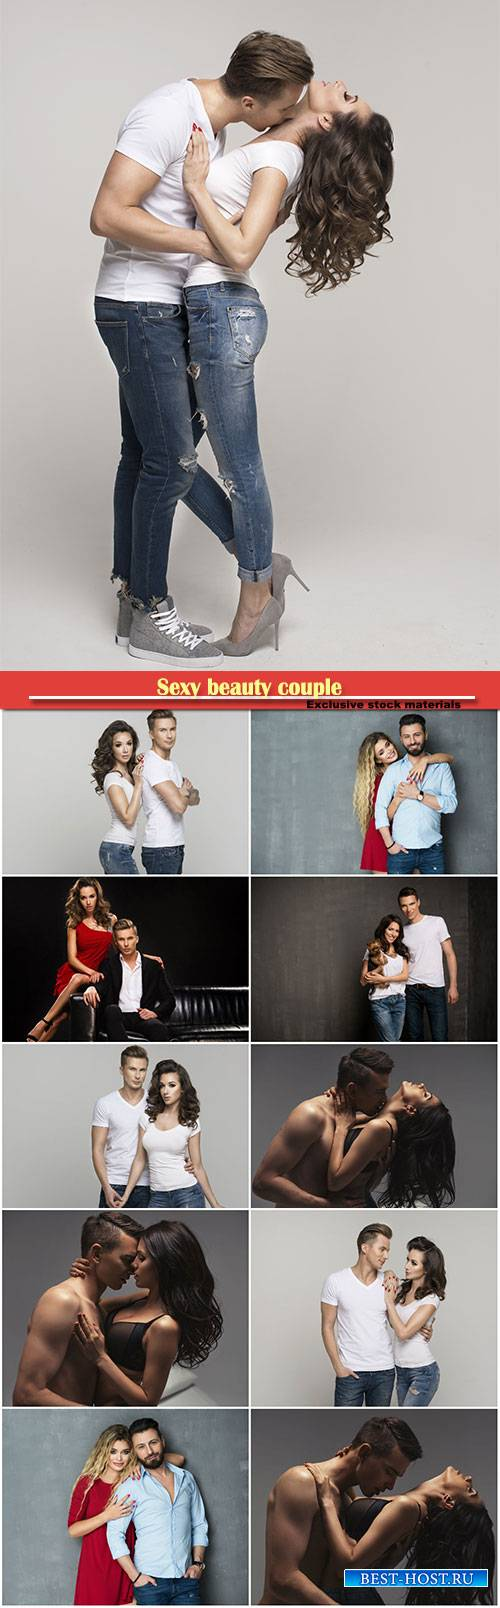 Sexy beauty couple, couple in jeans